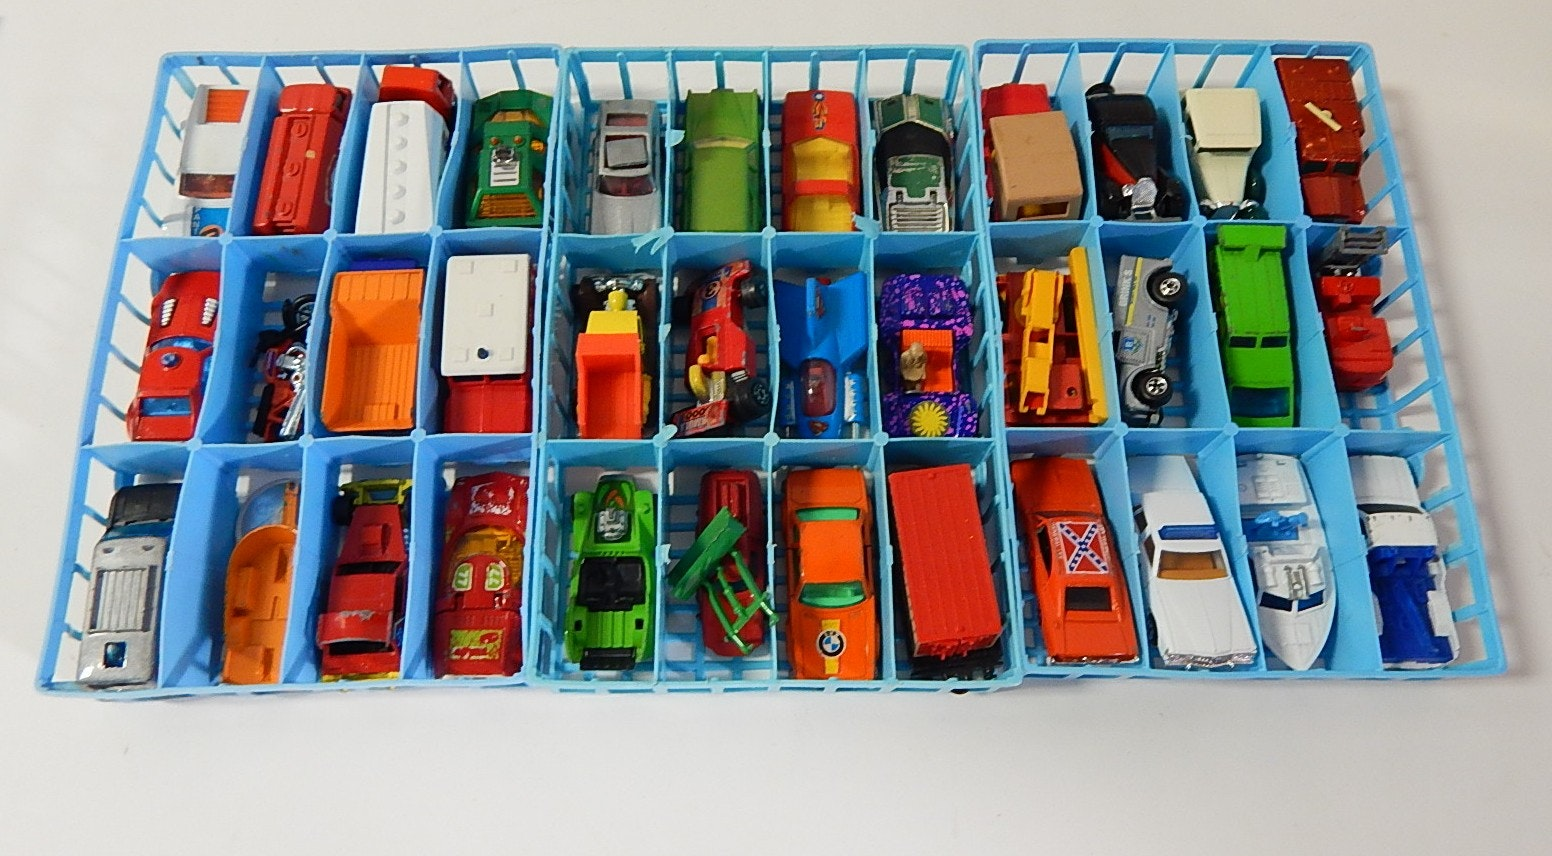 Mostly 1970s Matchbox, Lesney, Corgi, Ertl, Hotwheels Die Cast Toy Cars